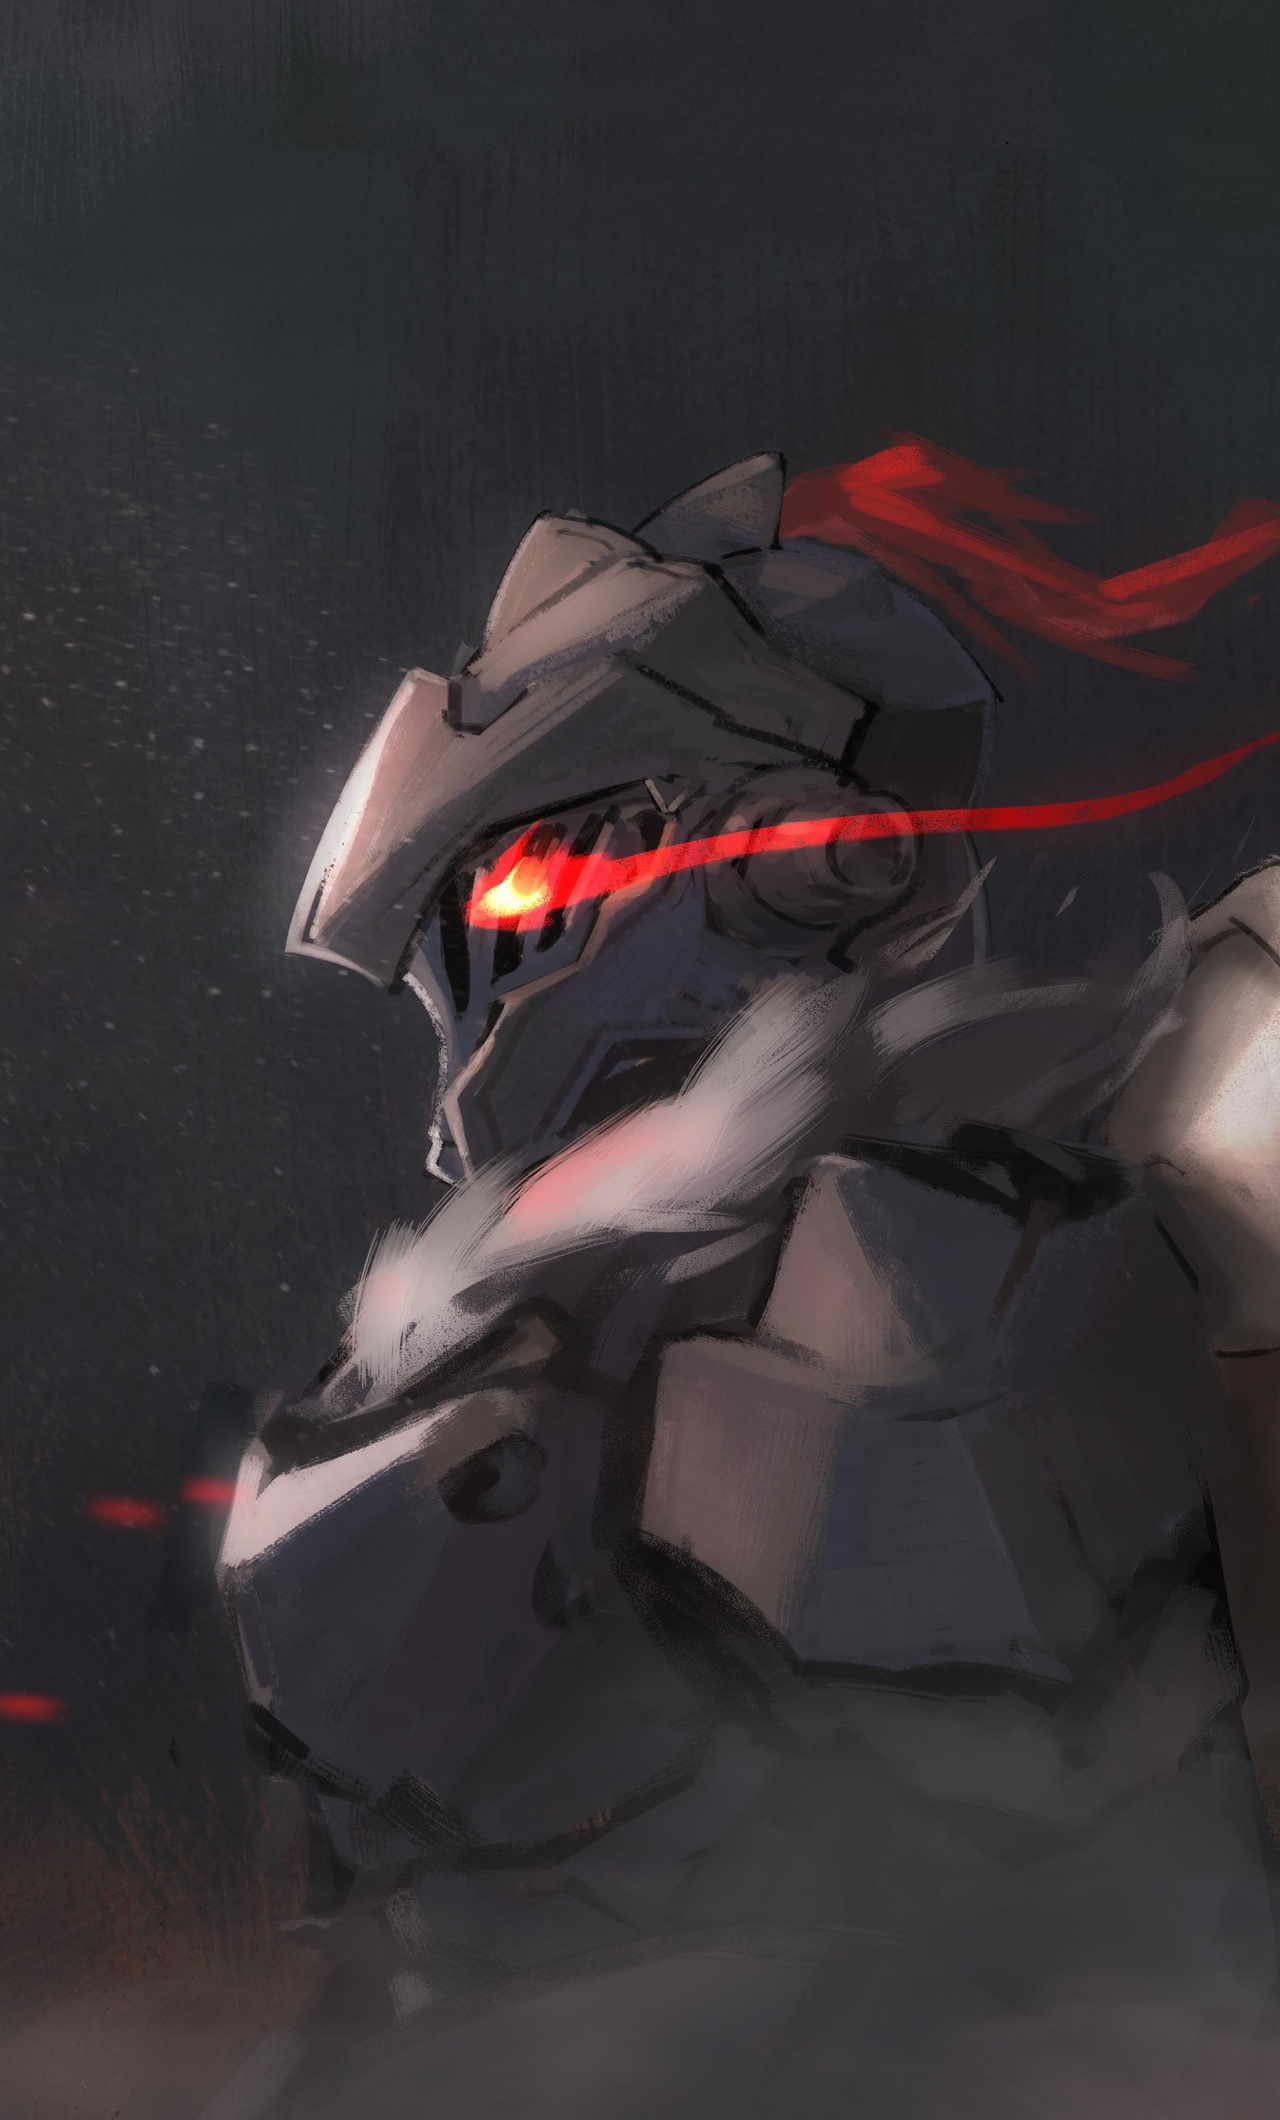 1280x2120 Goblin Slayer iPhone 6+ HD 4k Wallpapers, Images ...